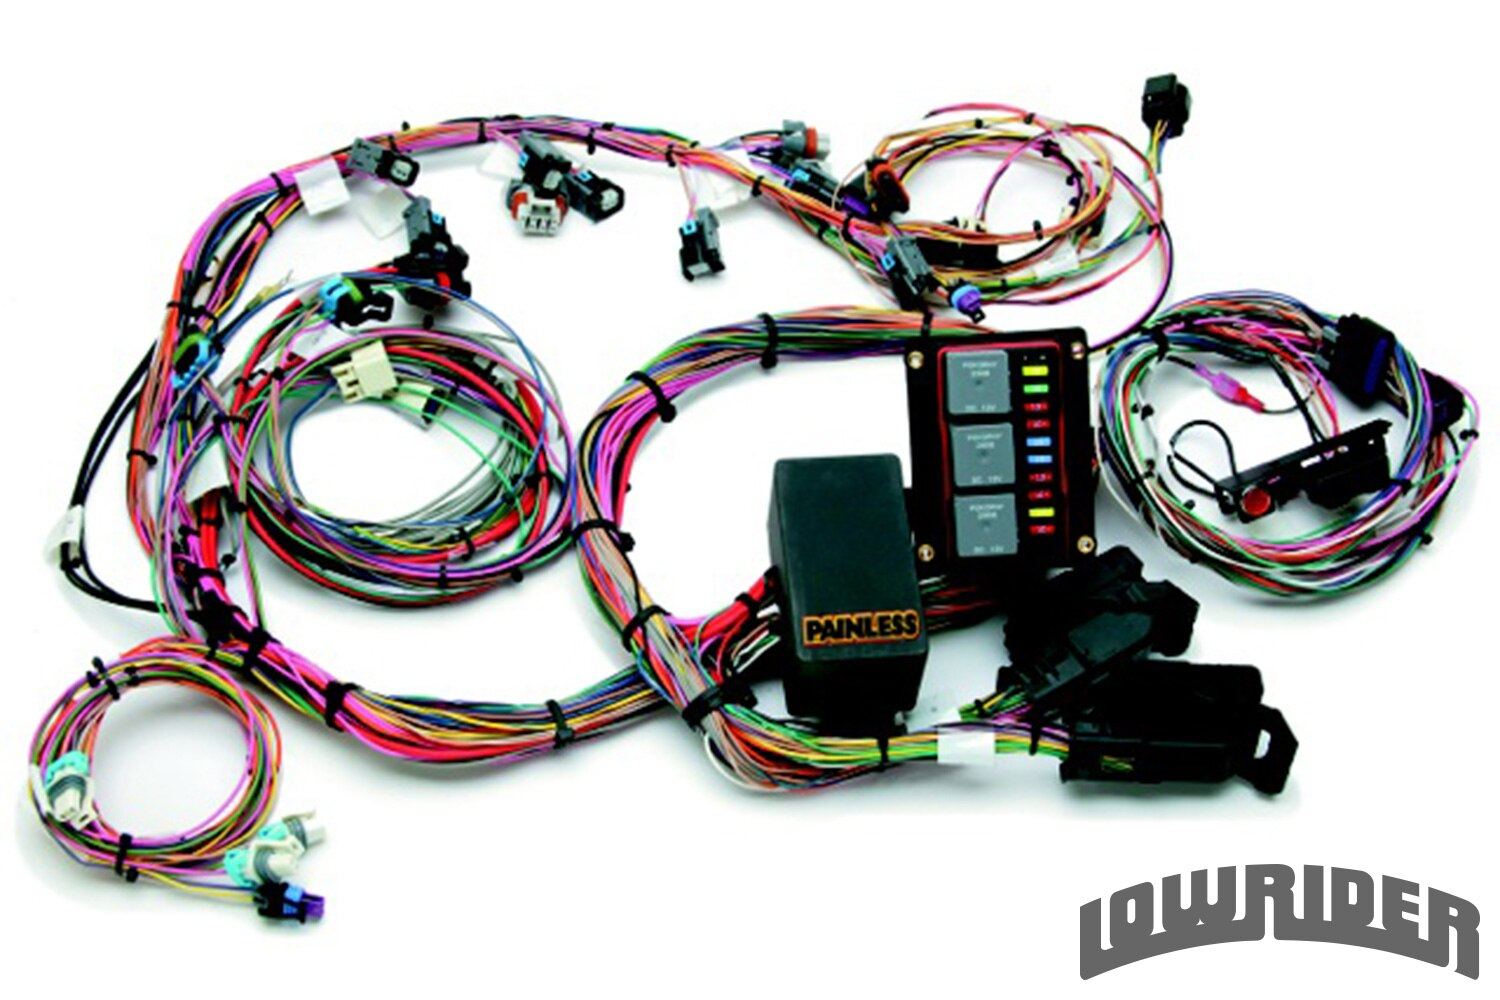 lowrider new products march 2014 painless performance LS harness lowrider new products march 2014 lowrider magazine painless ls wiring harness at alyssarenee.co